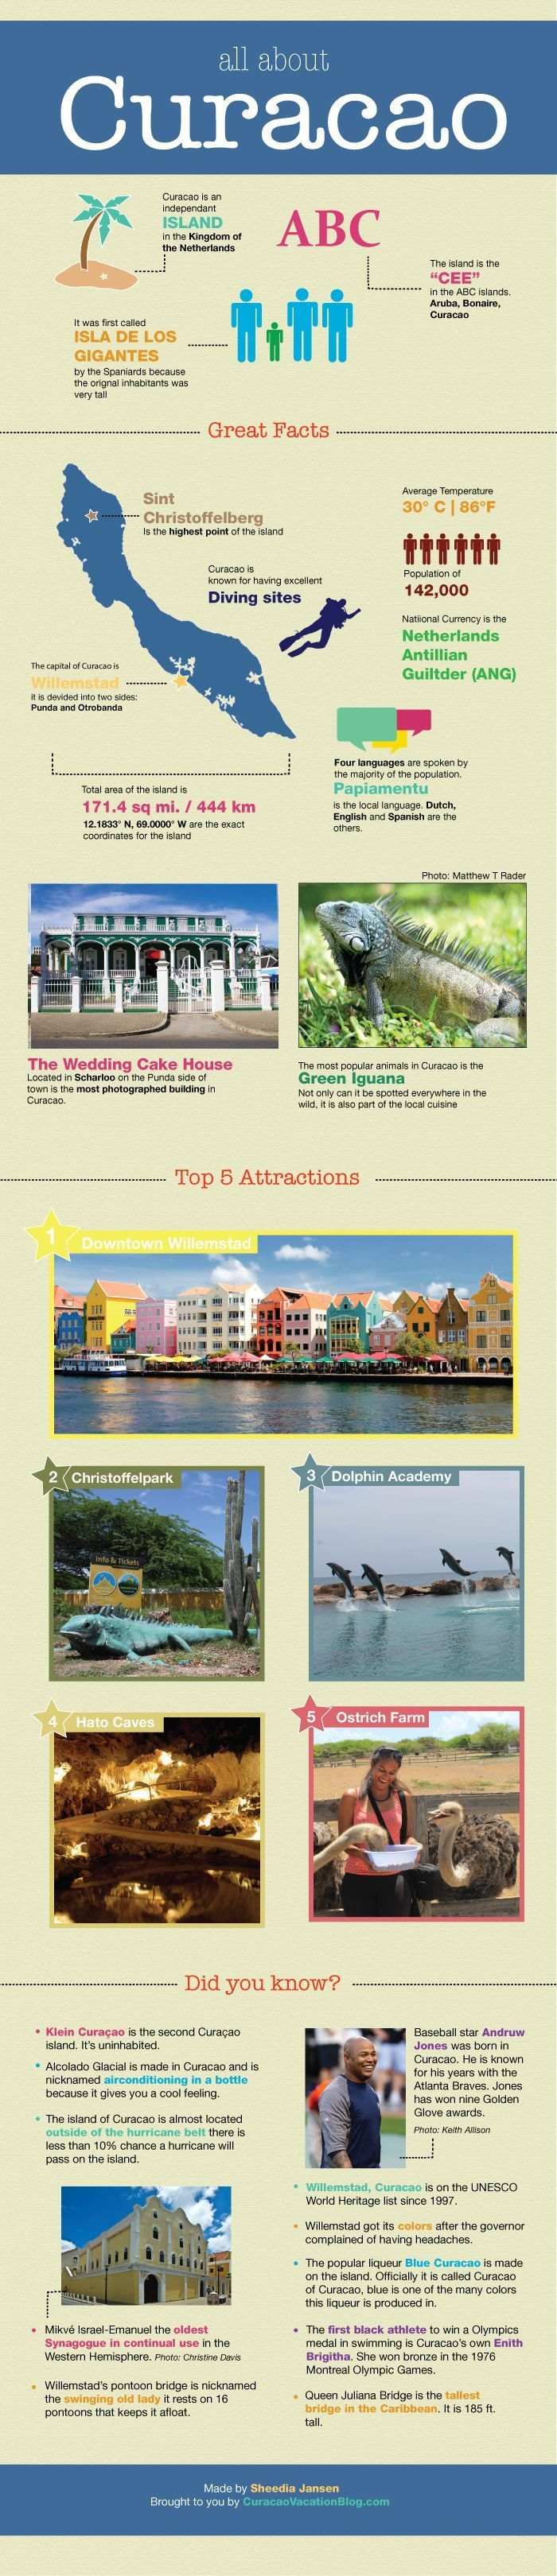 All About Curacao Travel Infographic